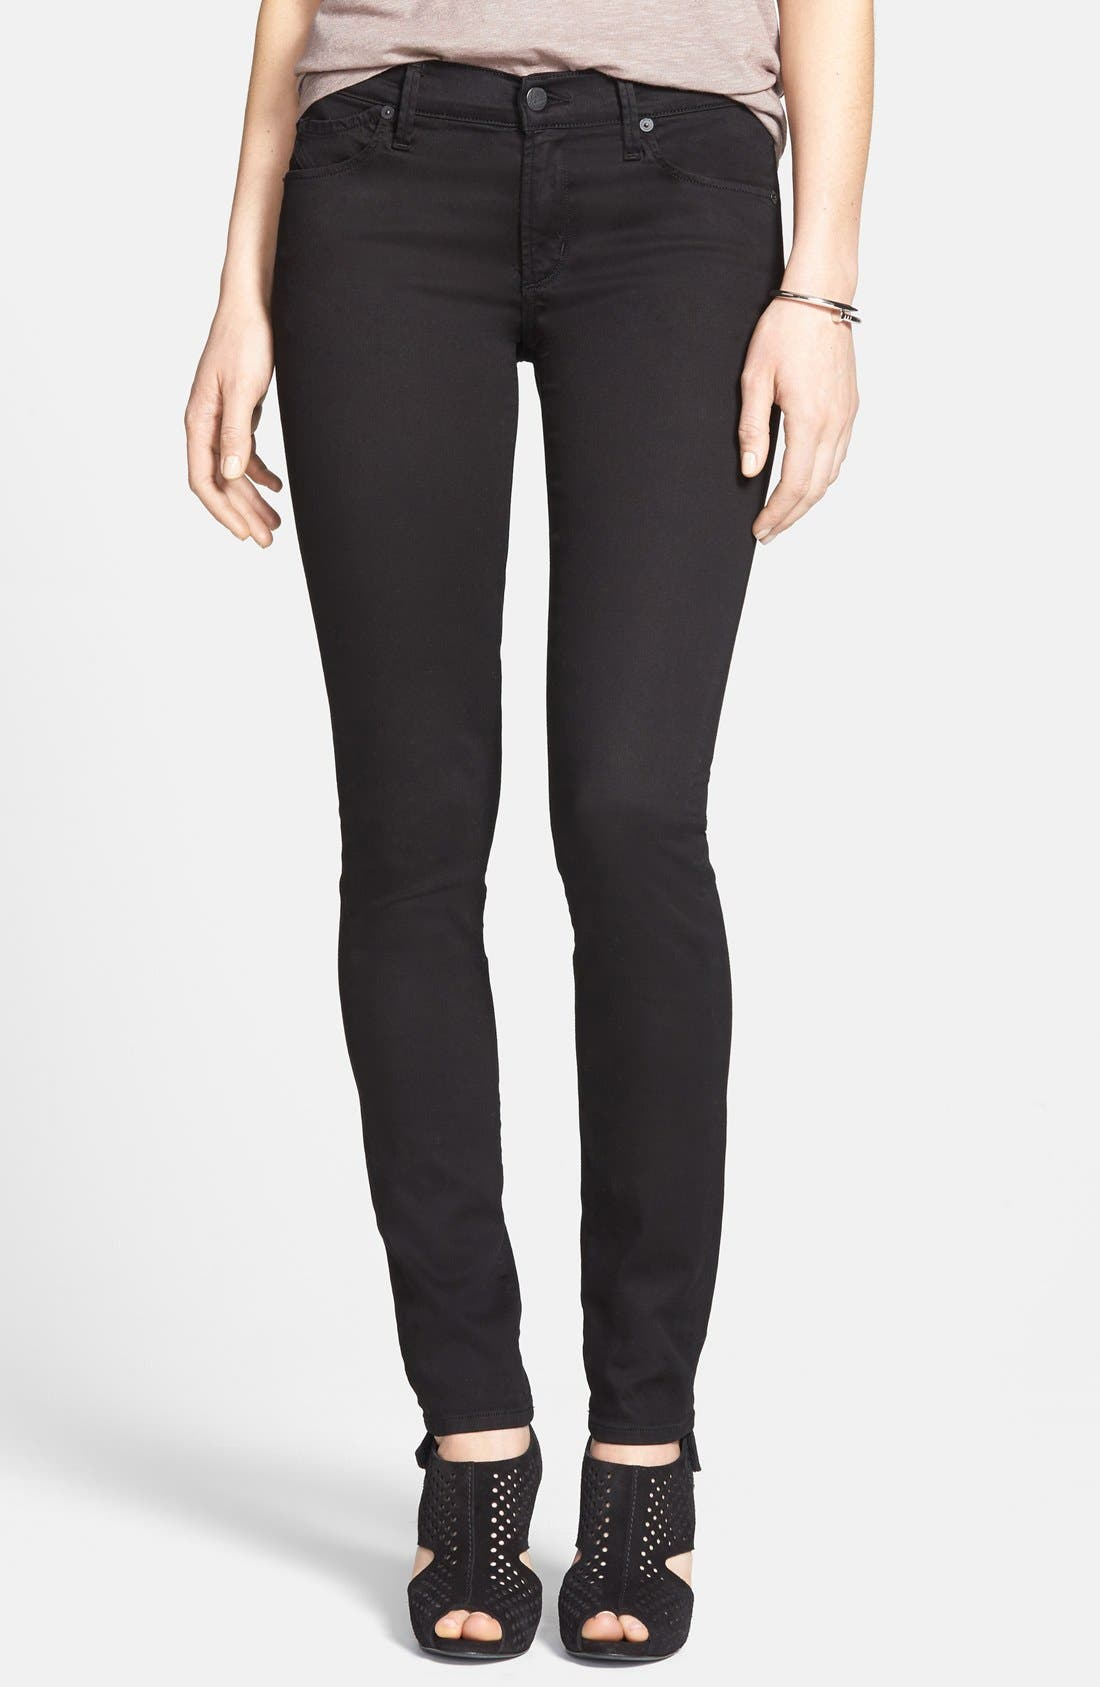 'Avedon' Ultra Skinny Jeans,                             Main thumbnail 1, color,                             001